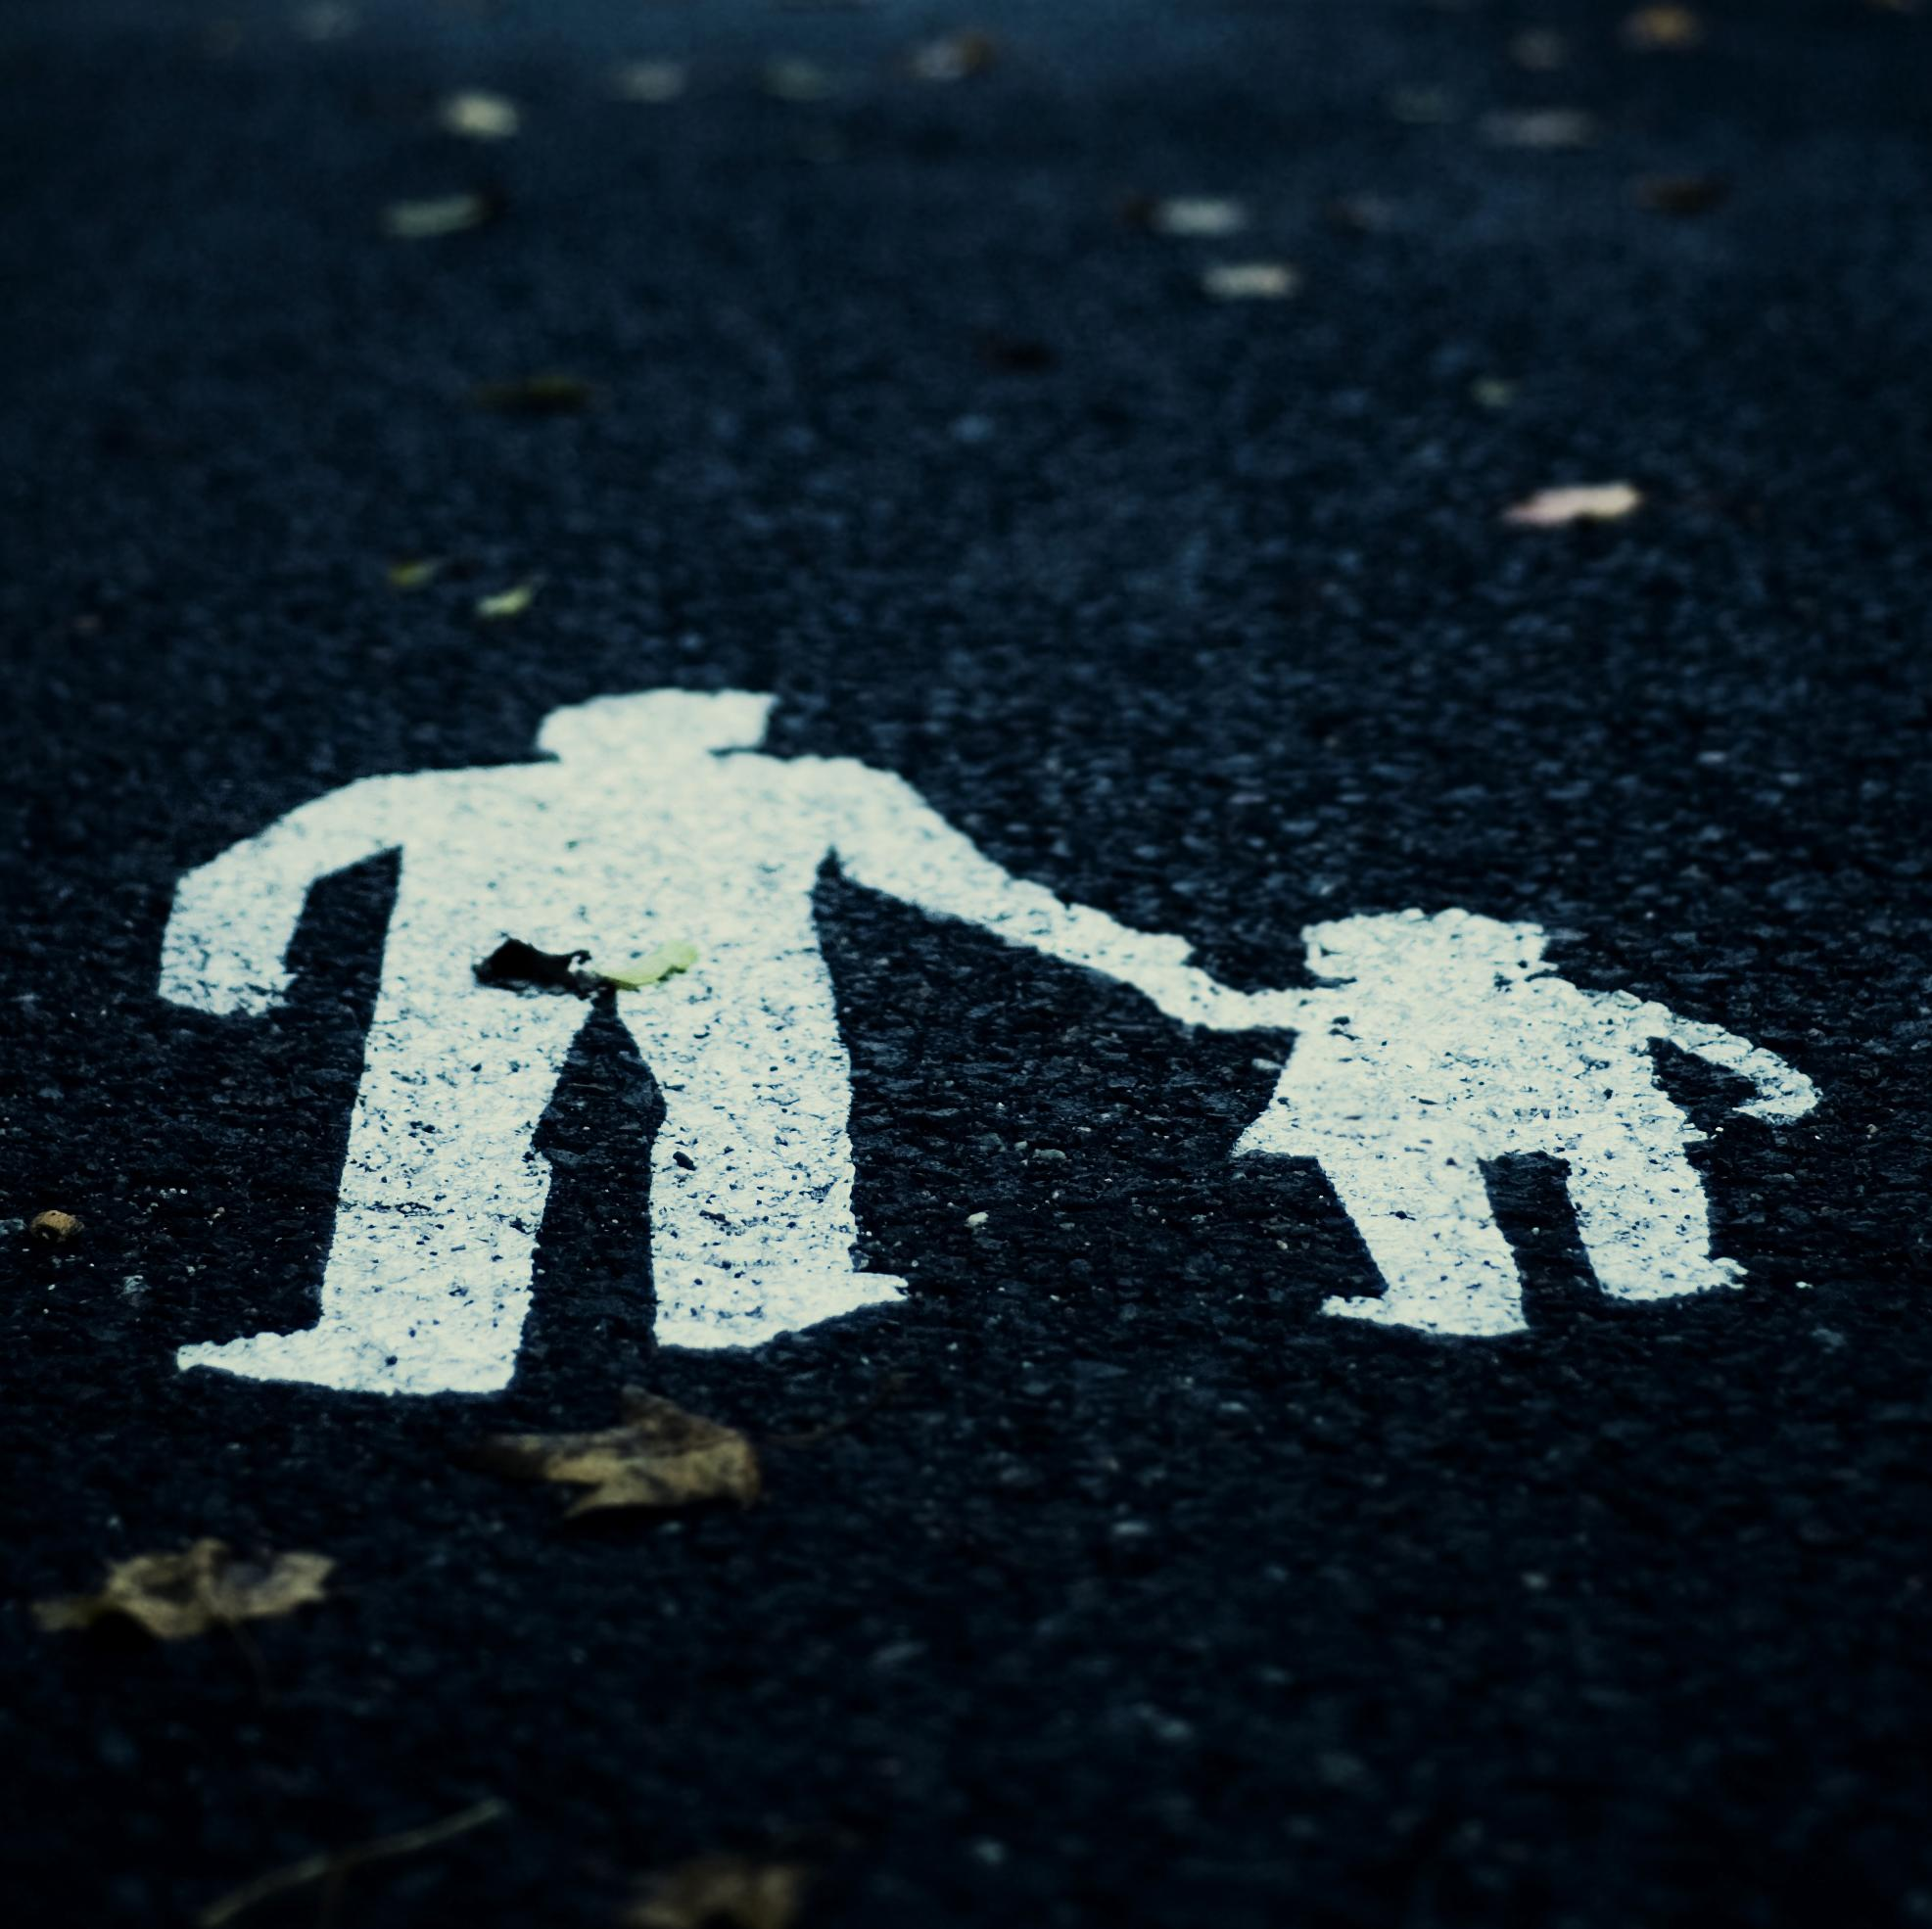 Painting on a road of adult and child holding hands.